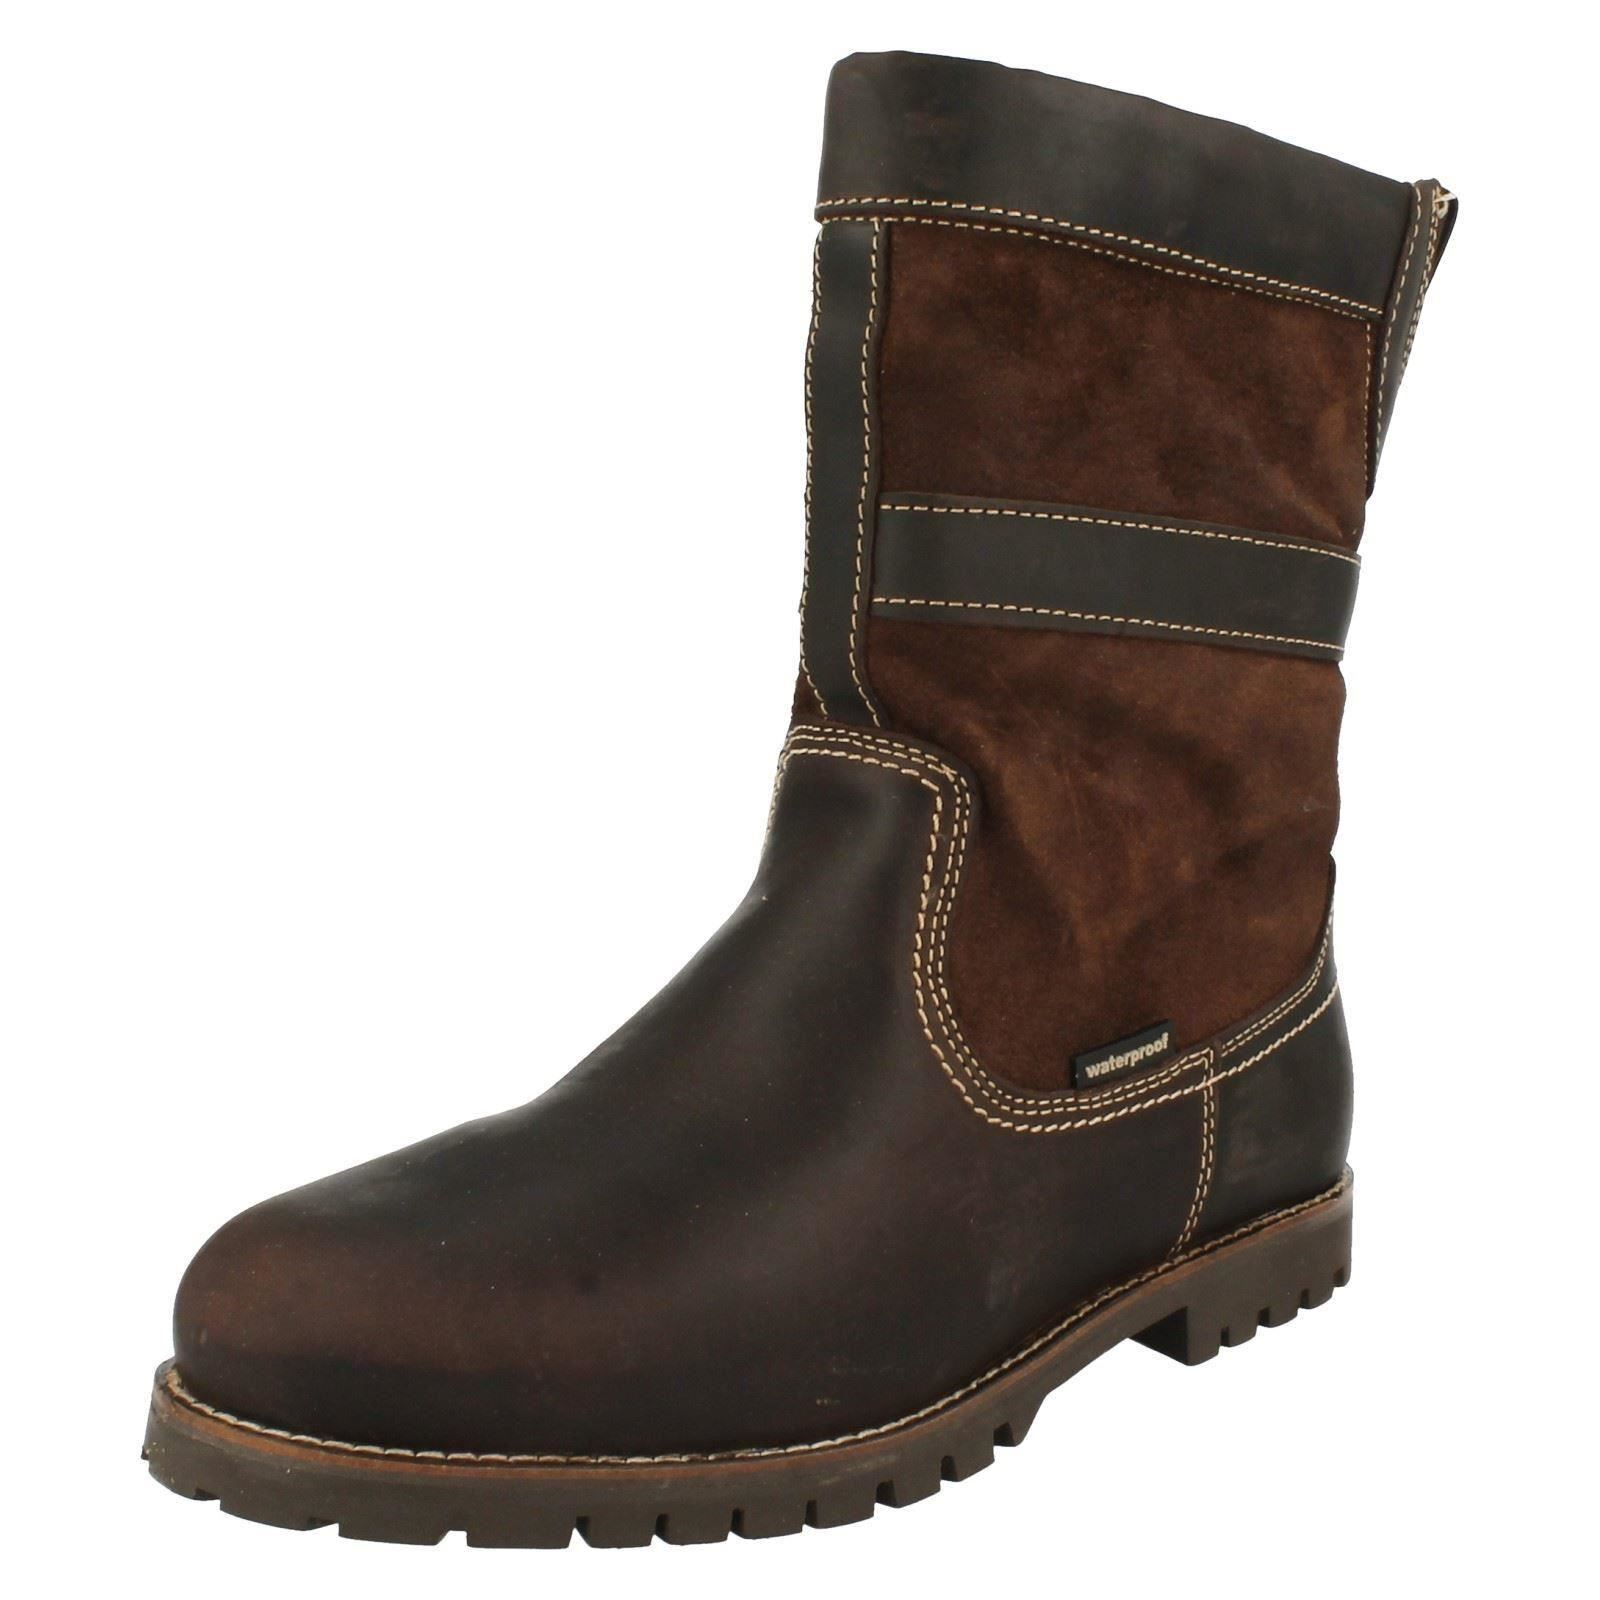 Herren HUMAN NATURE MEN LAARS Stiefel LEDER MEN NATURE PATRIC b67e79